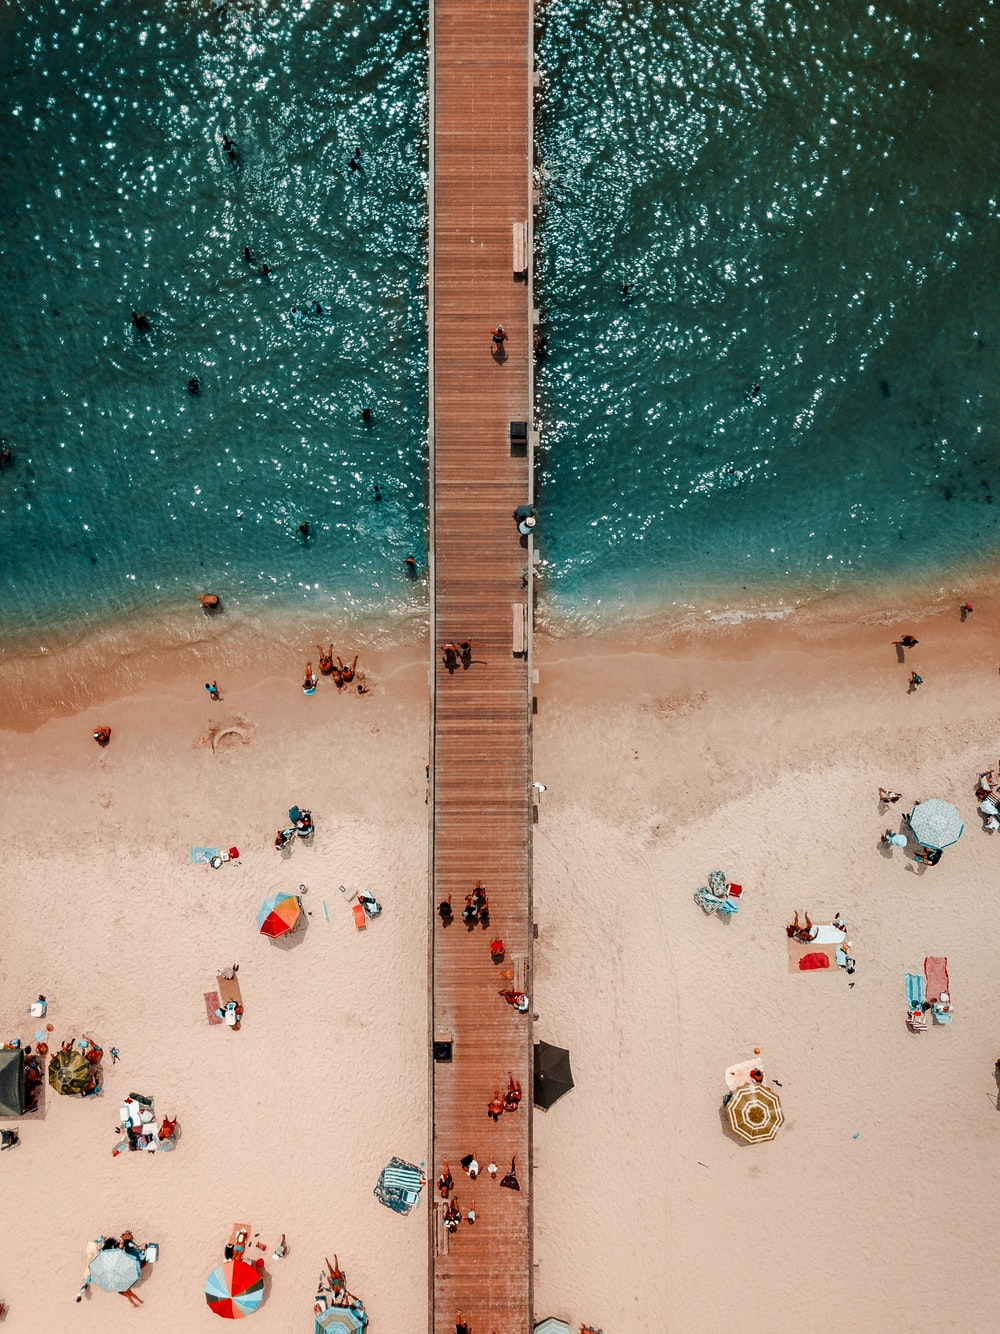 bird's-eye view photography of brown wooden dock on body of water